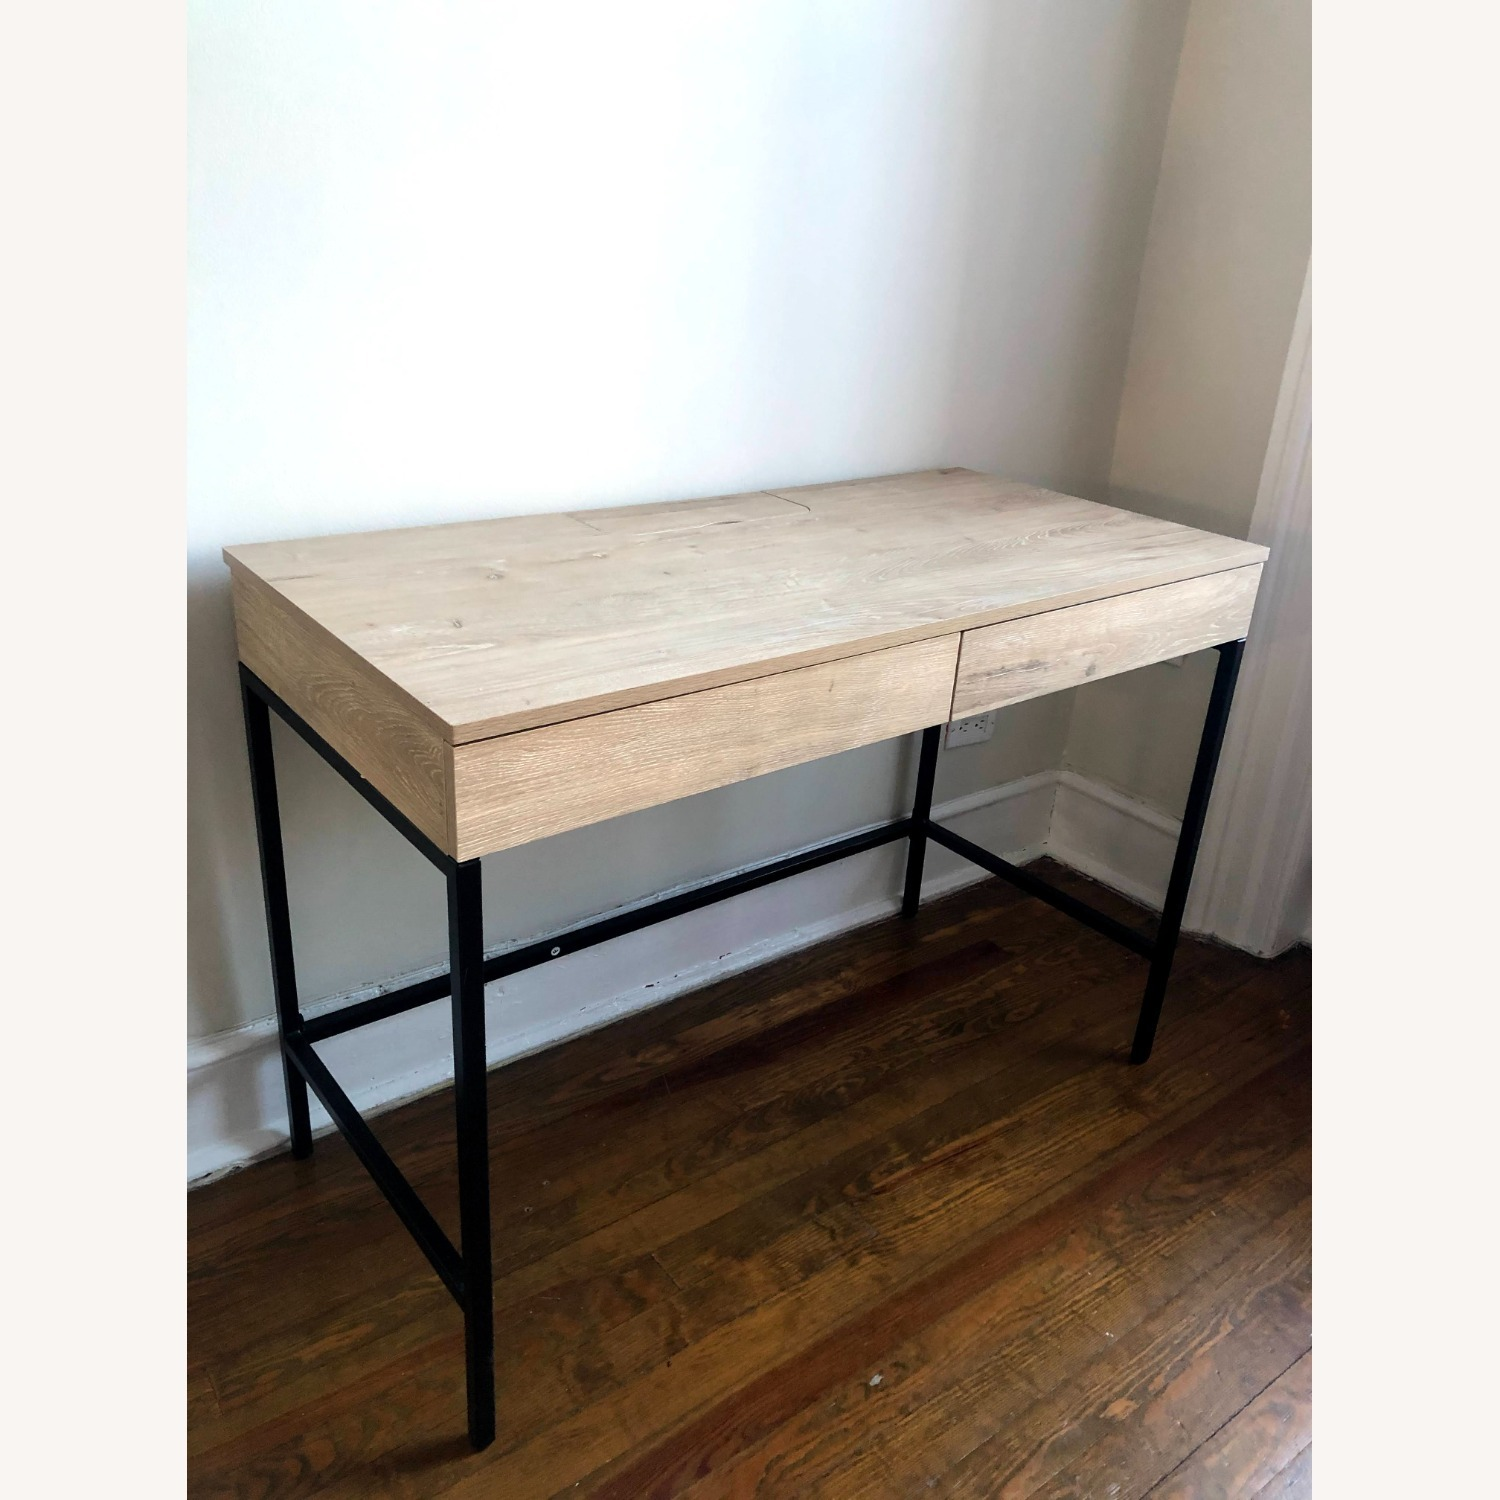 Target Project 62 Loring Wood Writing Desk with Drawers - image-2